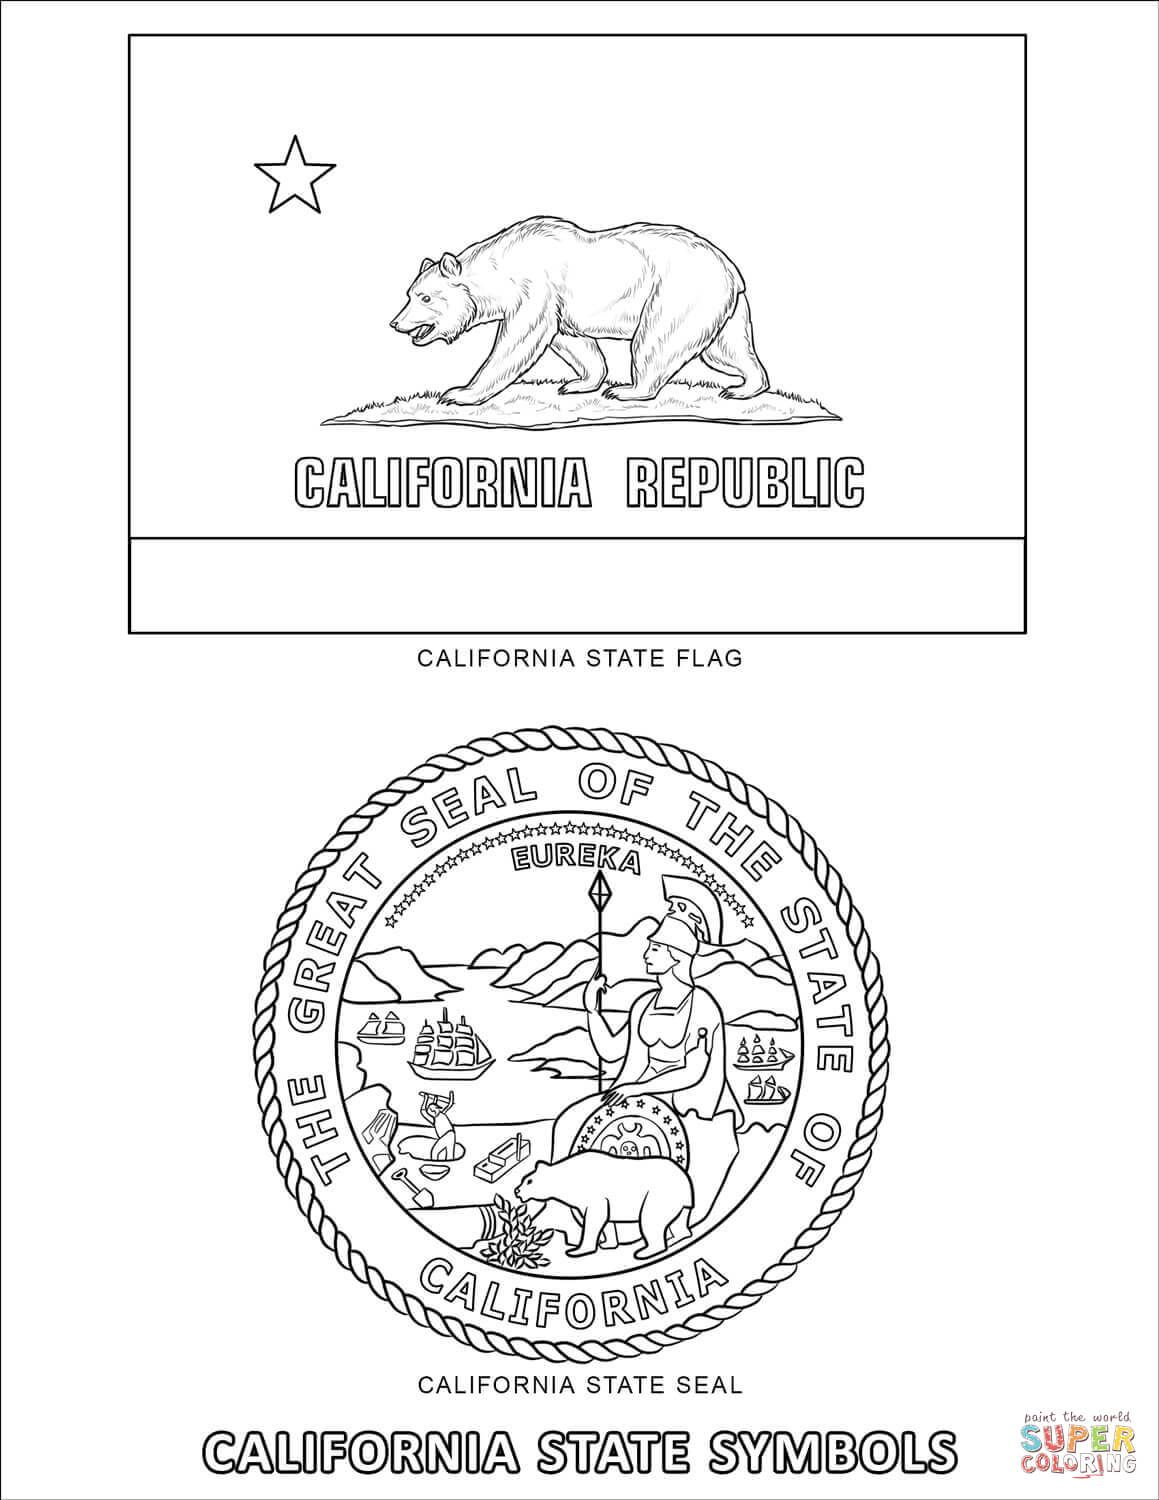 California State Symbols Coloring Page Free Printable Coloring Pages State Symbols Flag Coloring Pages California State